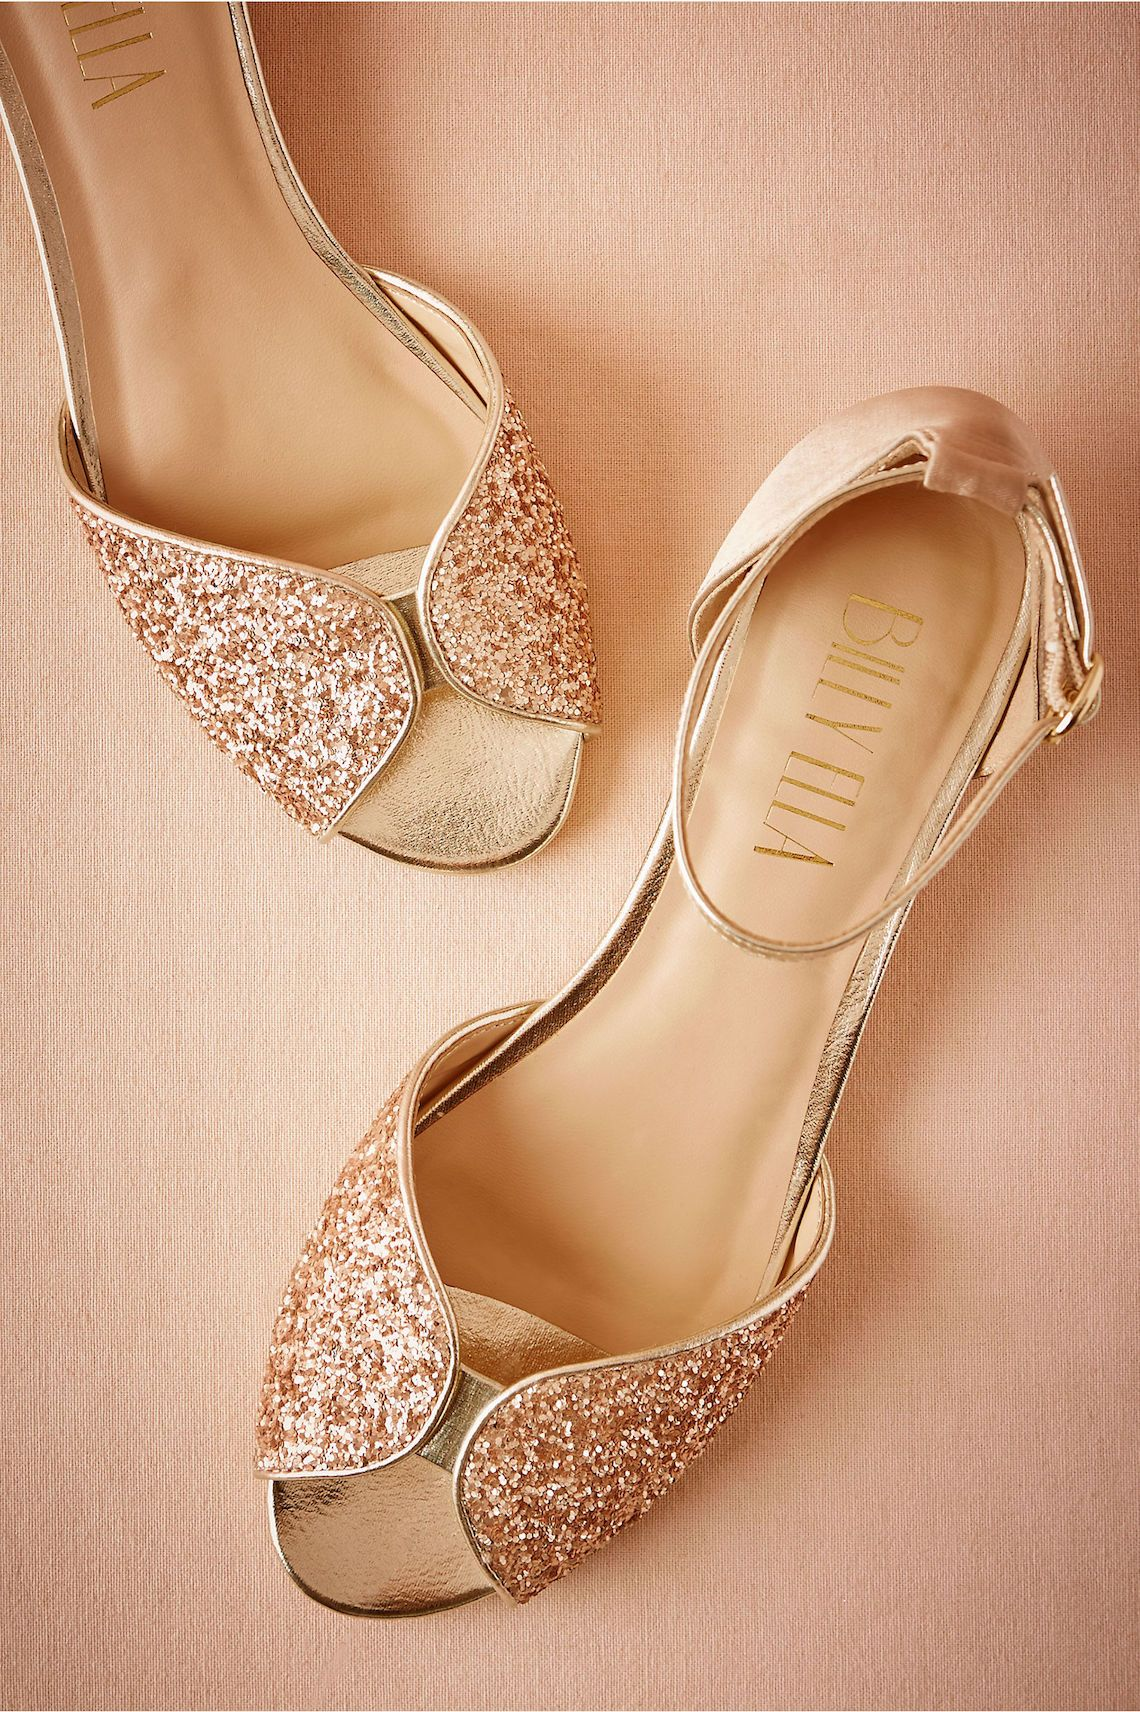 91d844172355 10 Flat Wedding Shoes (That Are Just As Chic As Heels)